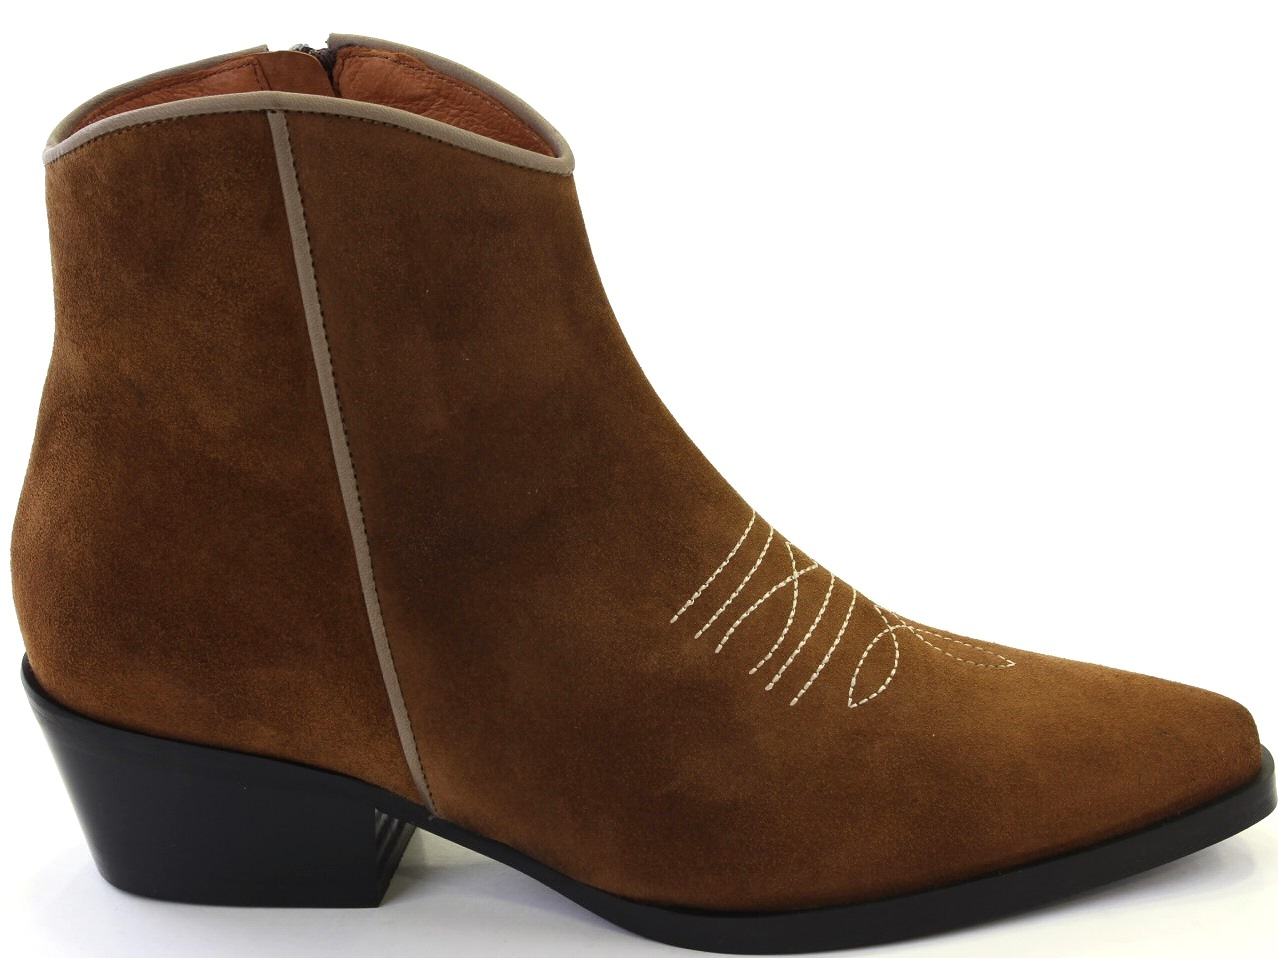 Heel Ankle Boots Sofia Costa - 085 10174